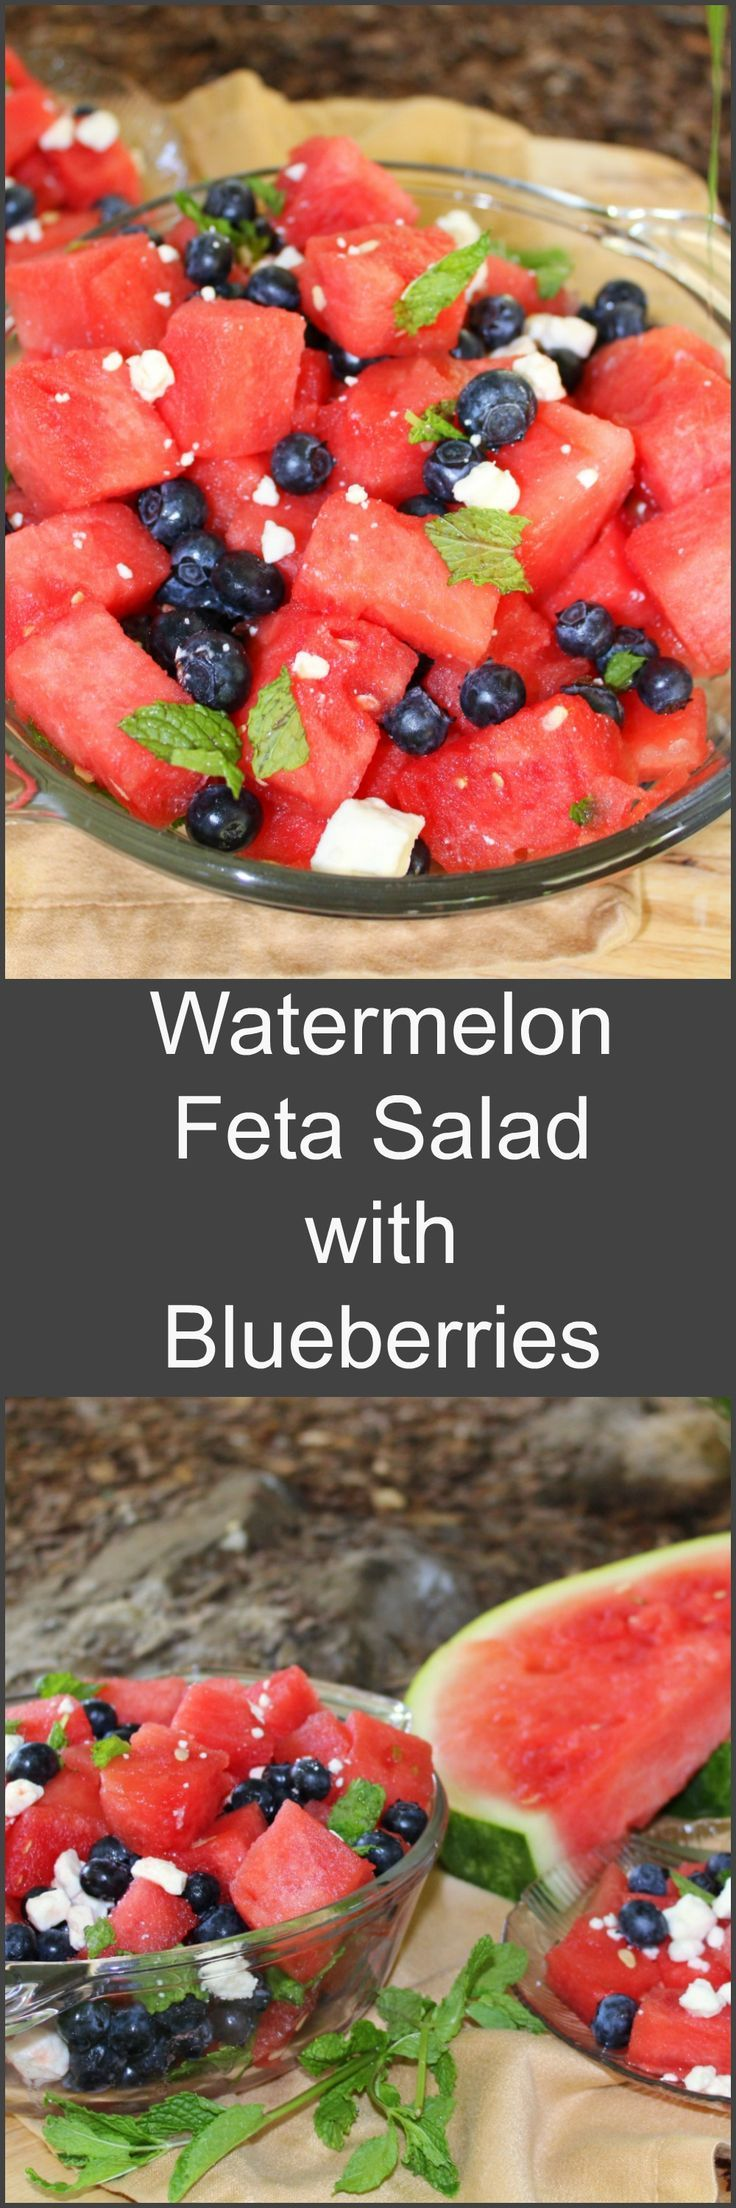 One of the easiest and tastiest summertime treats! Watermelon Feta Salad with Blueberries and Mint!